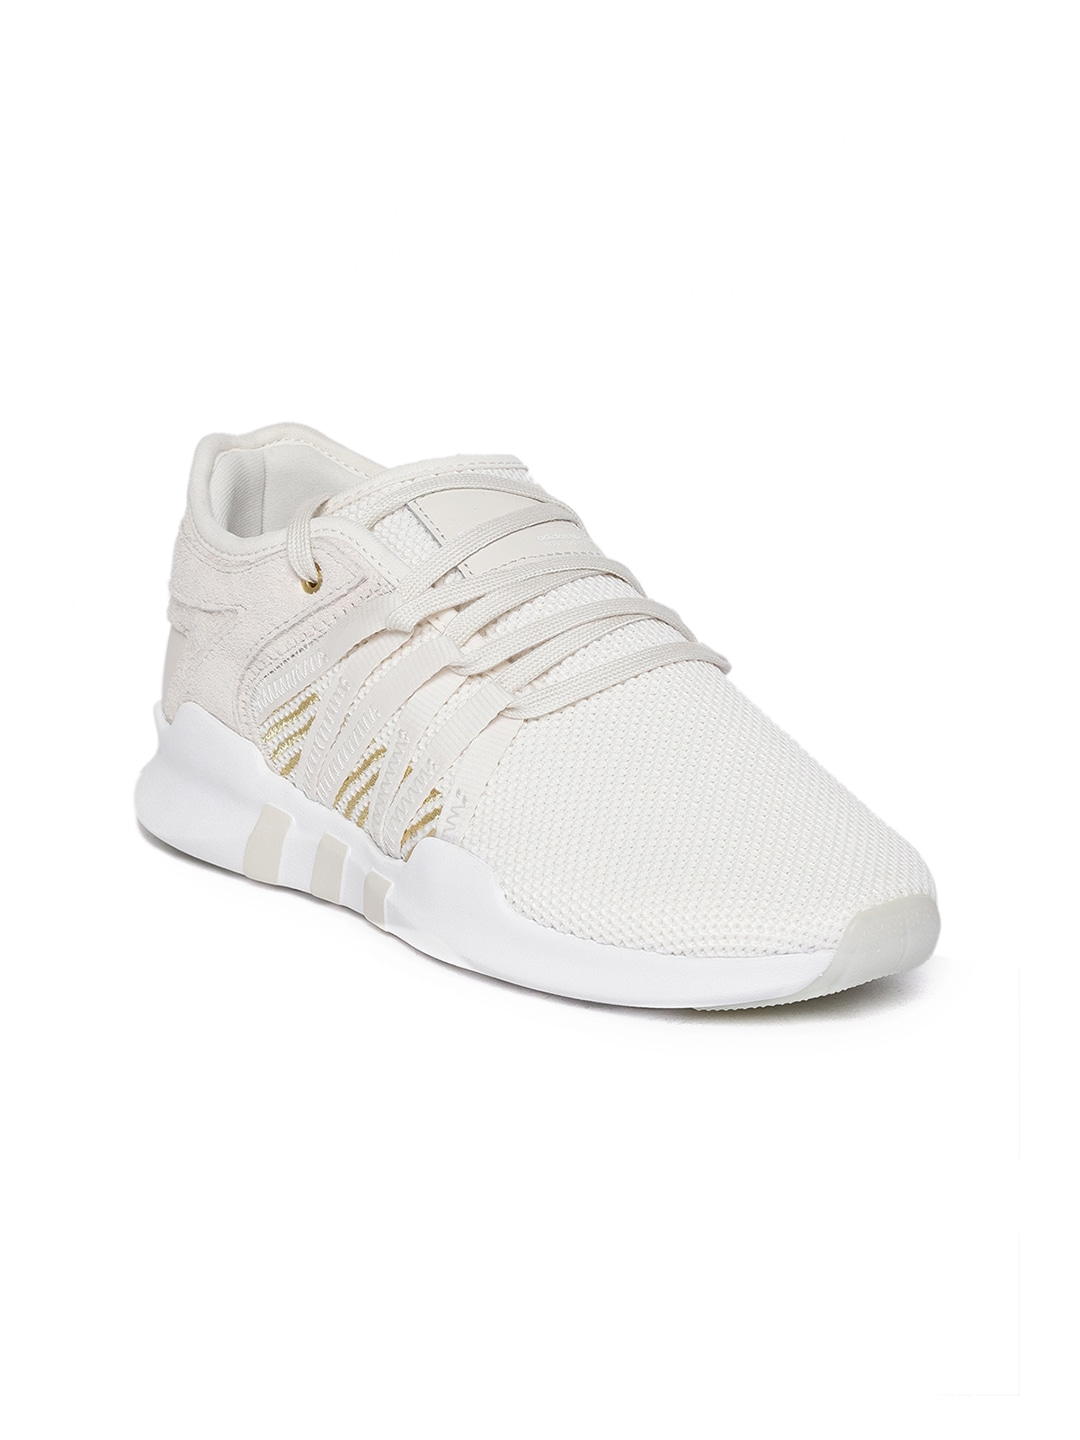 buy popular 3c657 e3e78 Women Sneakers. ADIDAS Originals